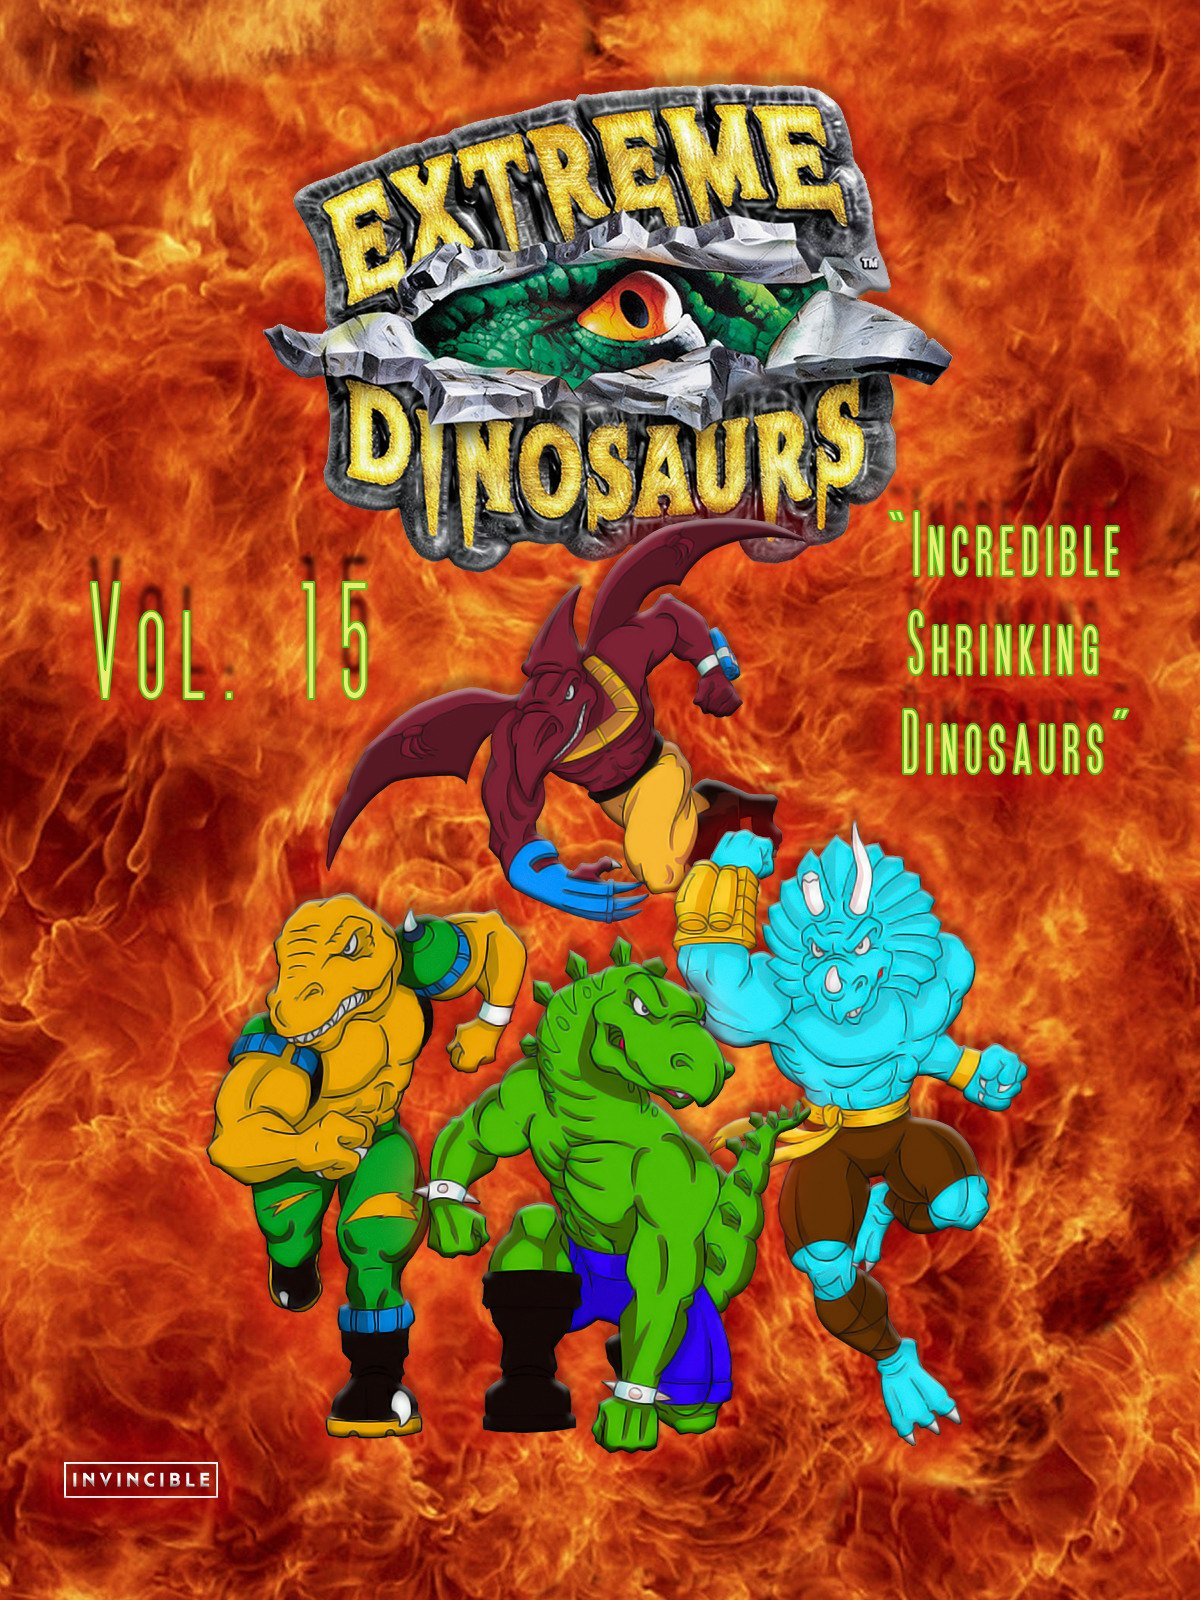 Extreme Dinosaurs Vol. 15Incredible Shrinking Dinosaurs